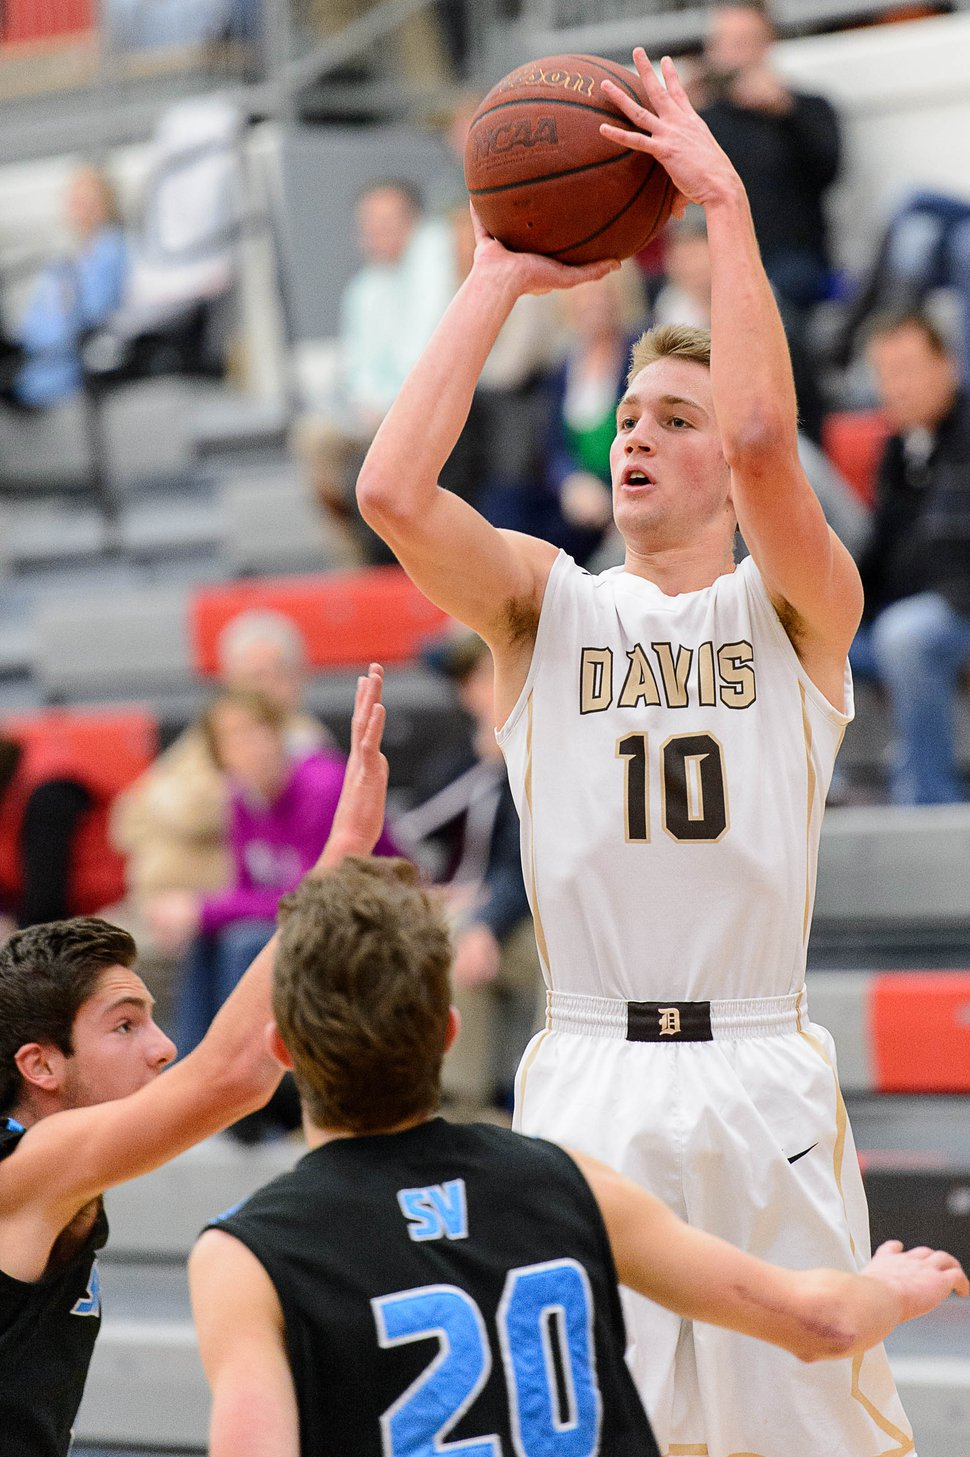 Trent Nelson | The Salt Lake Tribune Davis's Jesse Wade puts up a shot as Sky View faces Davis High School in the championship game of the Utah Elite 8 basketball tournament in American Fork, Saturday December 13, 2014.